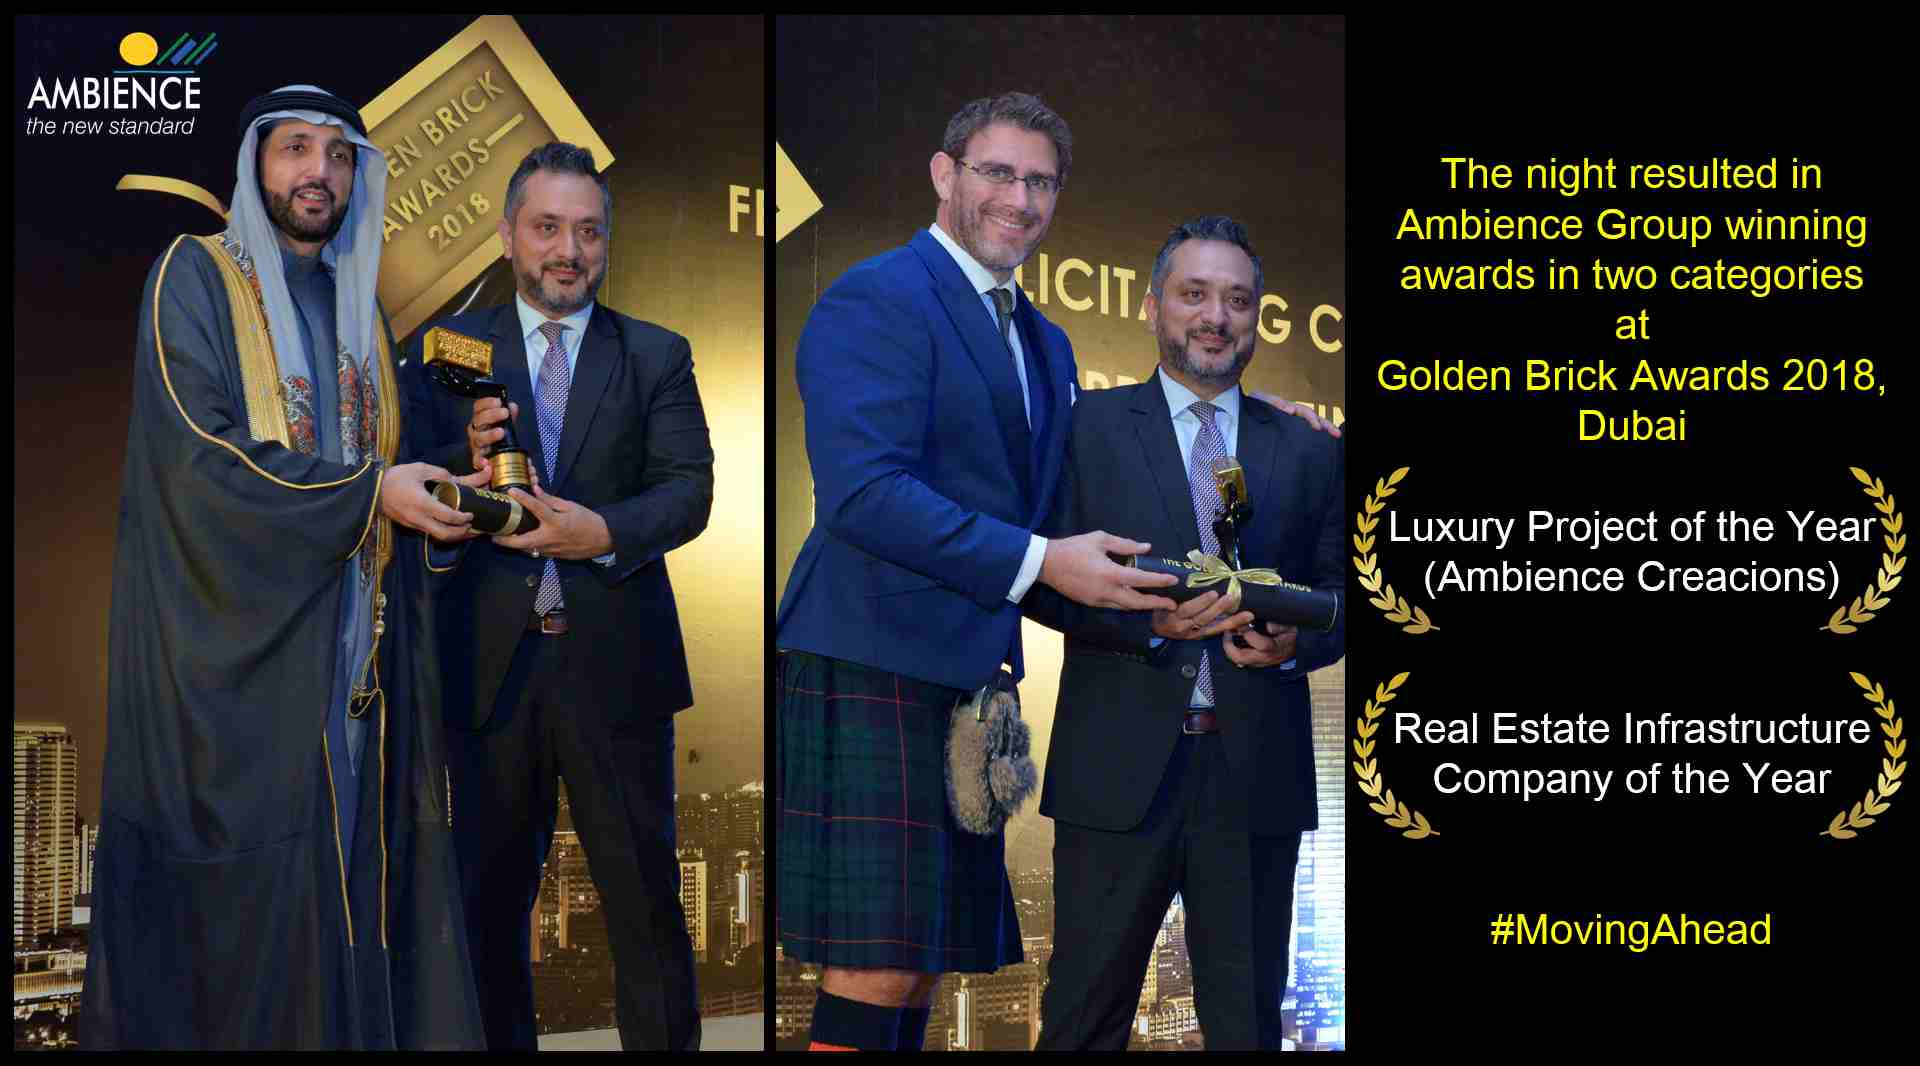 Ambience Group won 2 awards at Golden Brick Awards 2018 Dubai